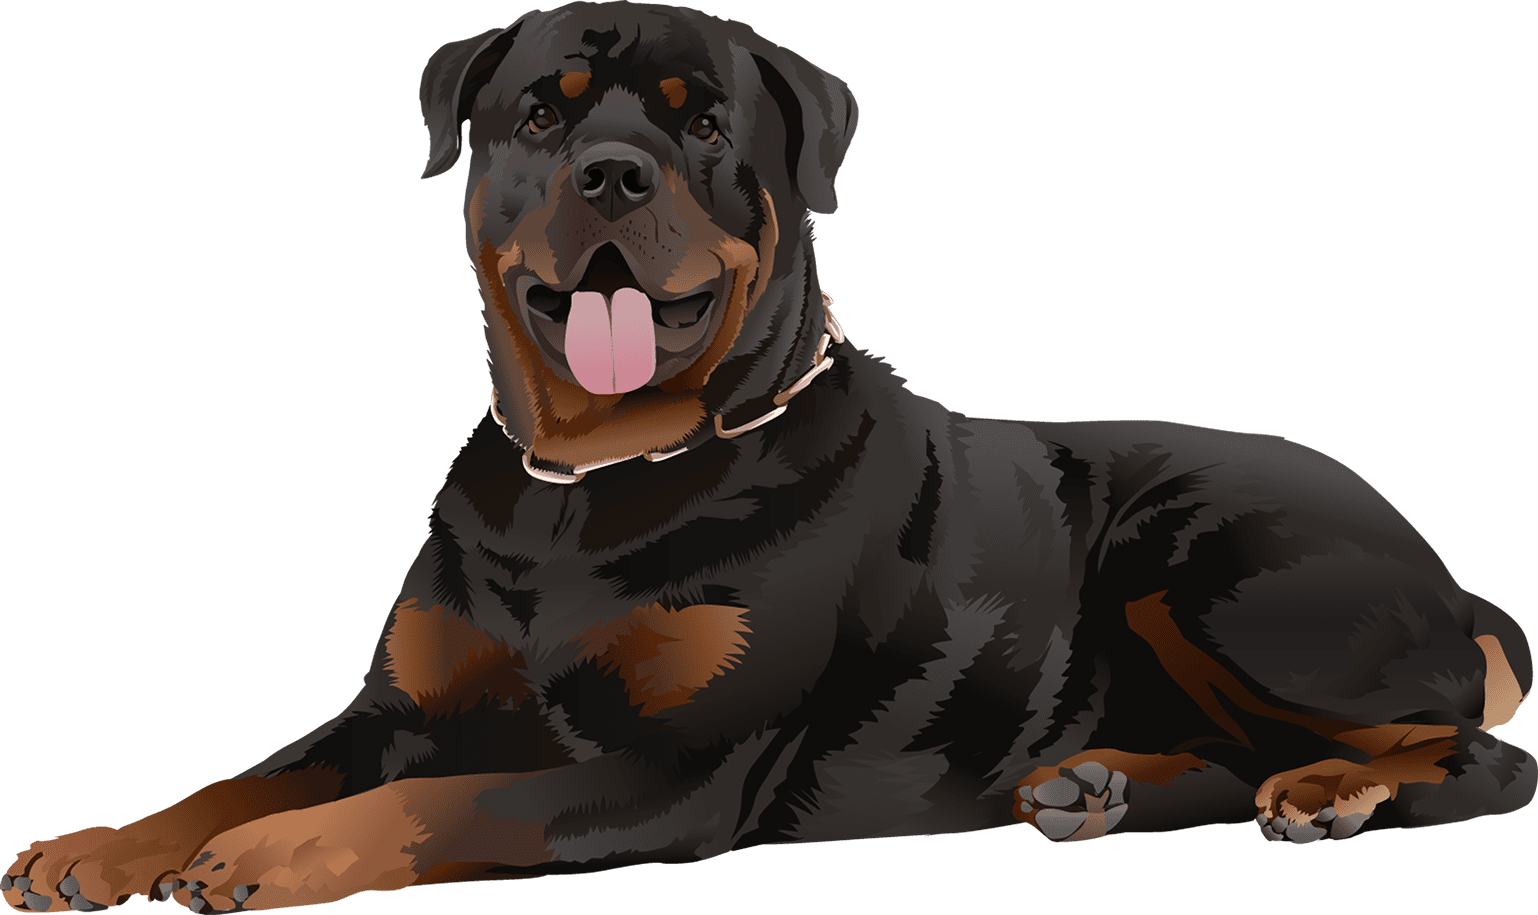 Rottweiler T-Shirt Laying Down - Vibrant Vector